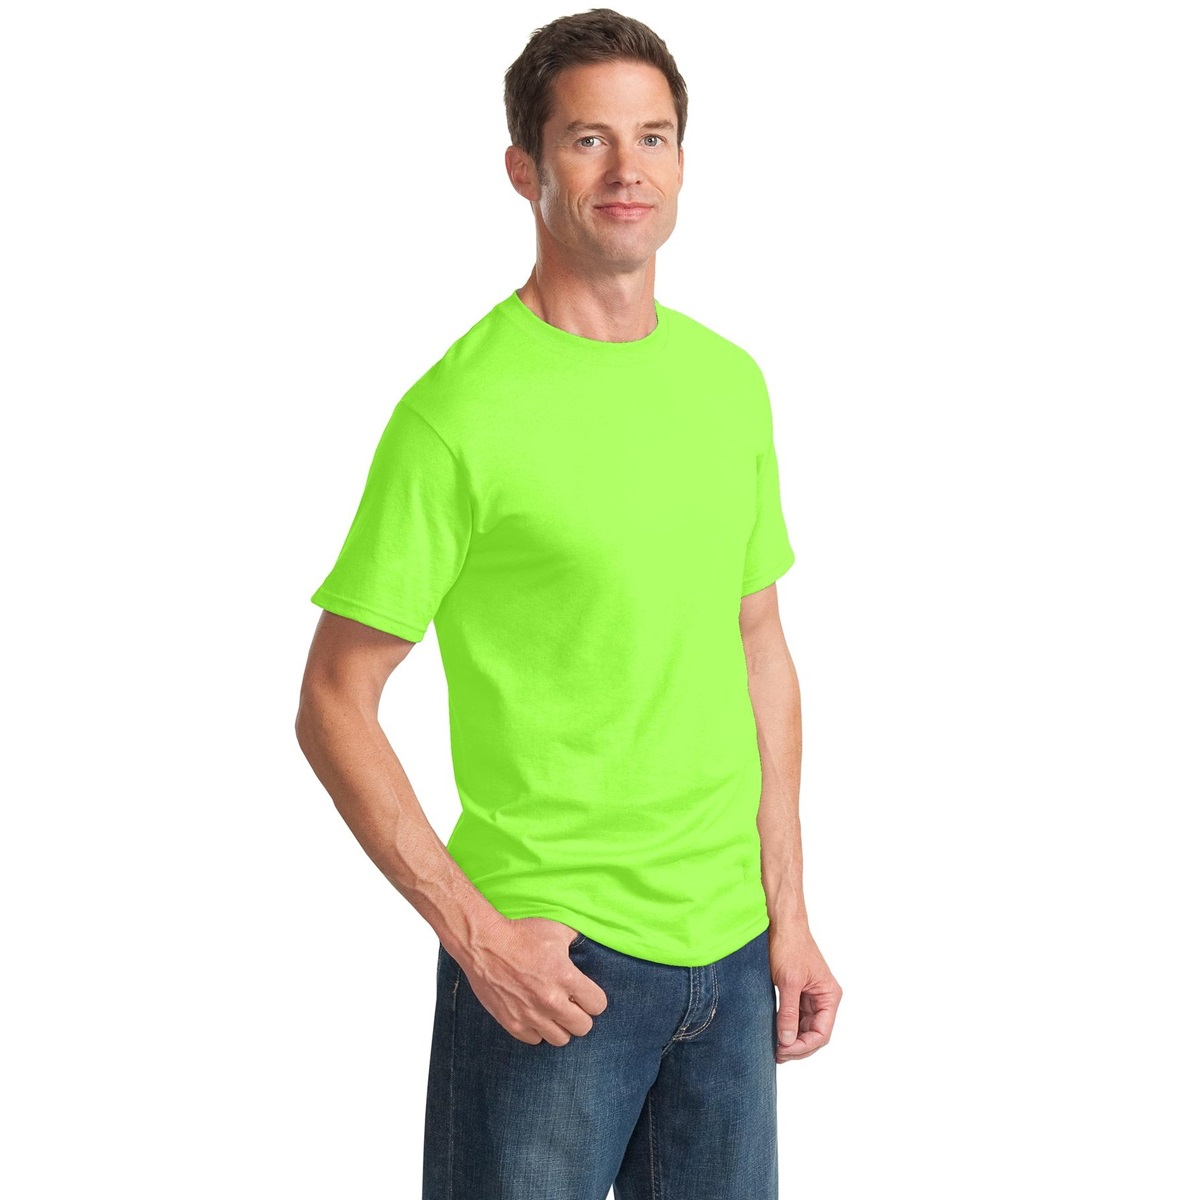 Jerzees 29m heavyweight blend 50 50 cotton poly t shirt for Bulk neon t shirts